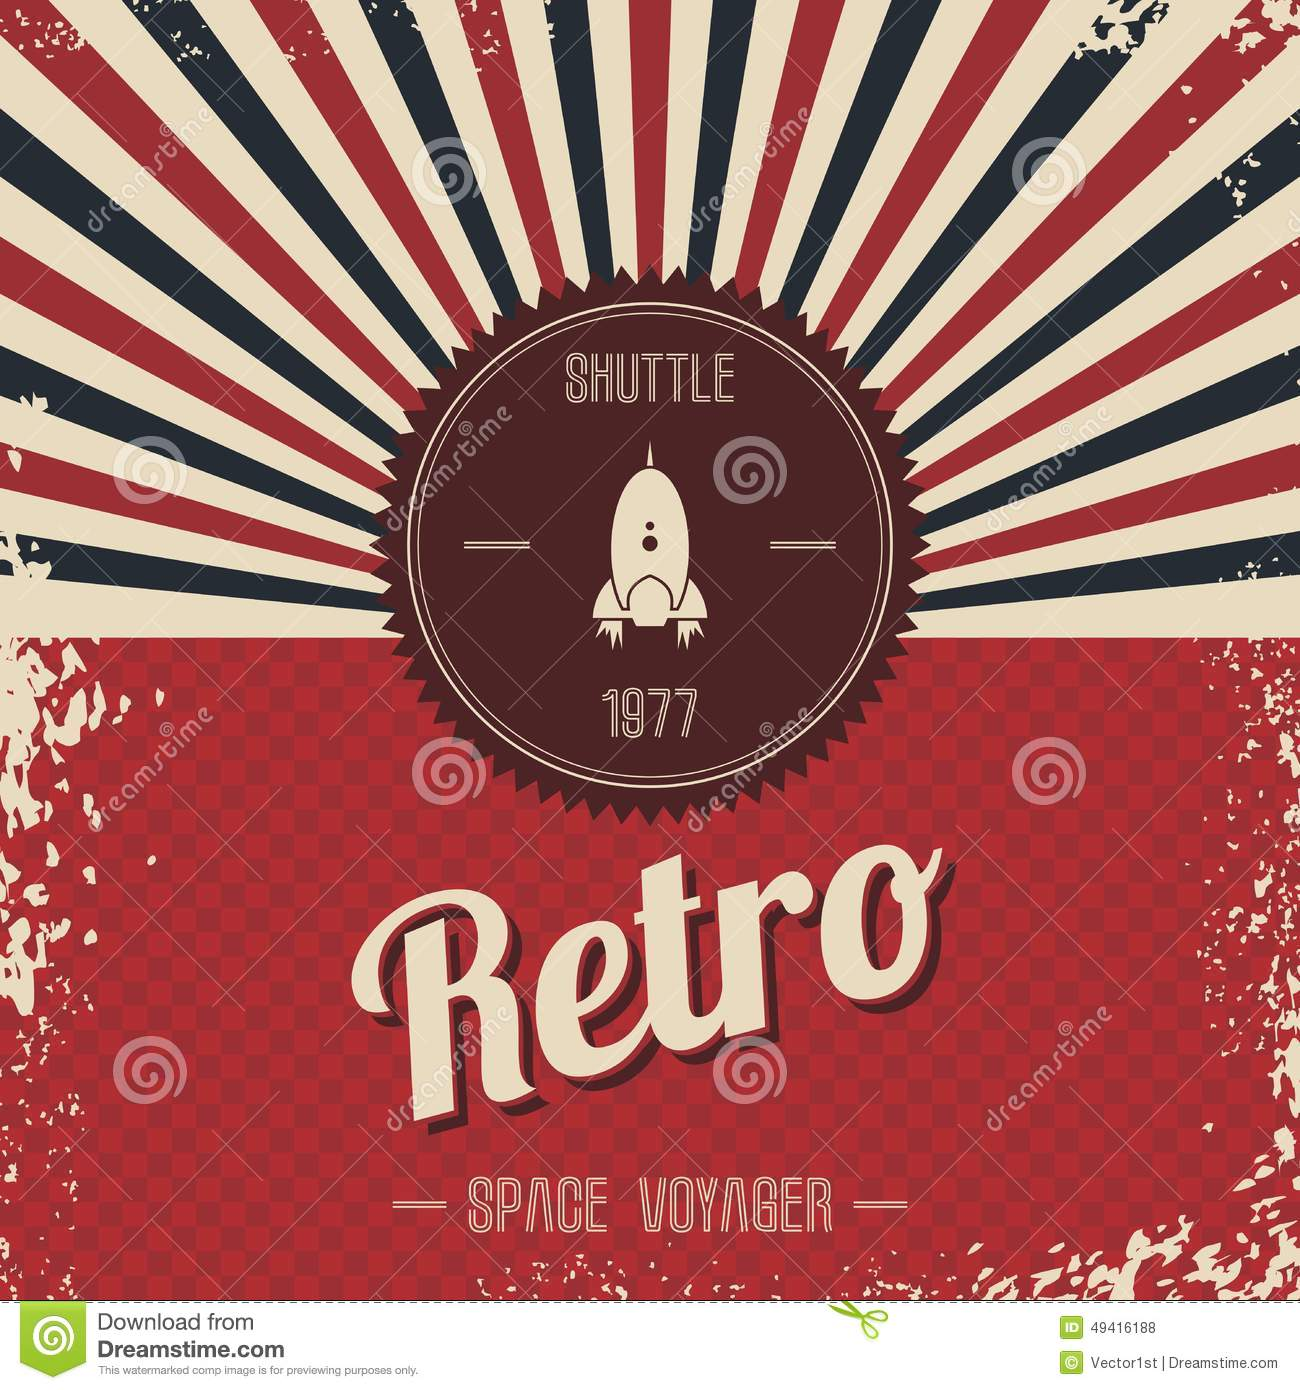 Royalty Free Stock Photo  Download Retro Space Rocket Template Theme. Retro Space Rocket Template Theme Stock Photo   Image  49416188